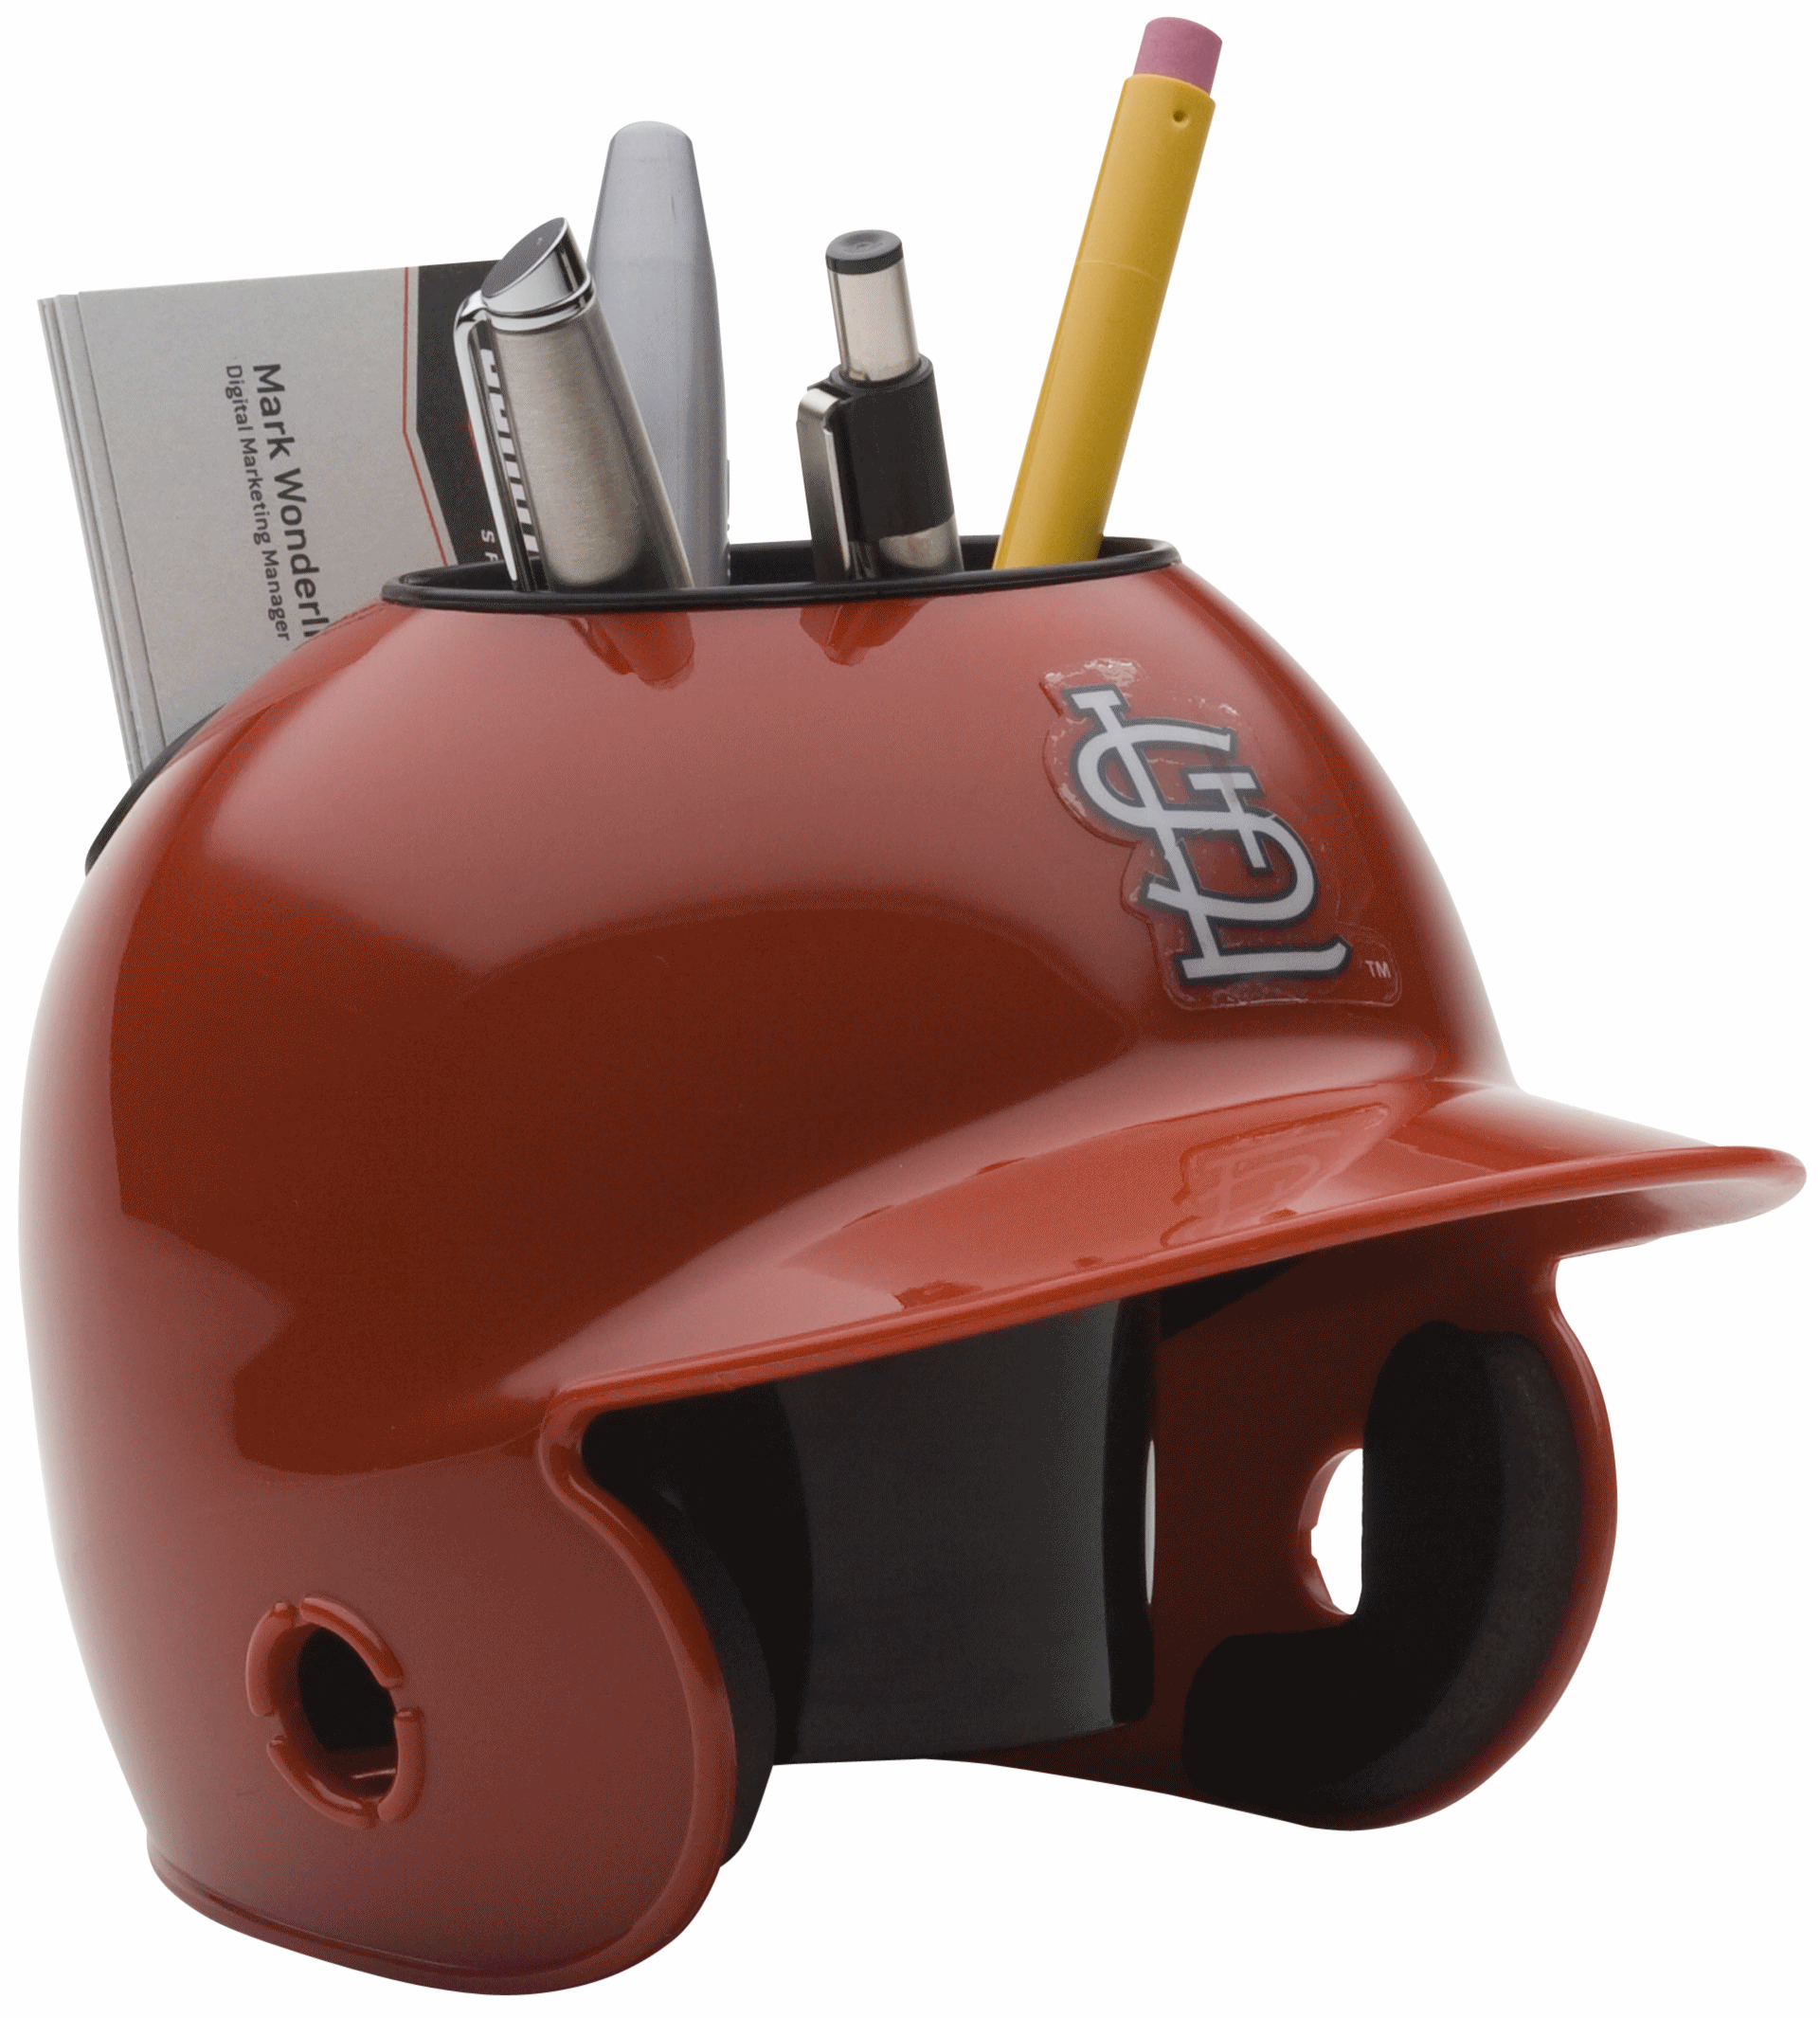 St Louis Cardinals Miniature Batters Helmet Desk Caddy